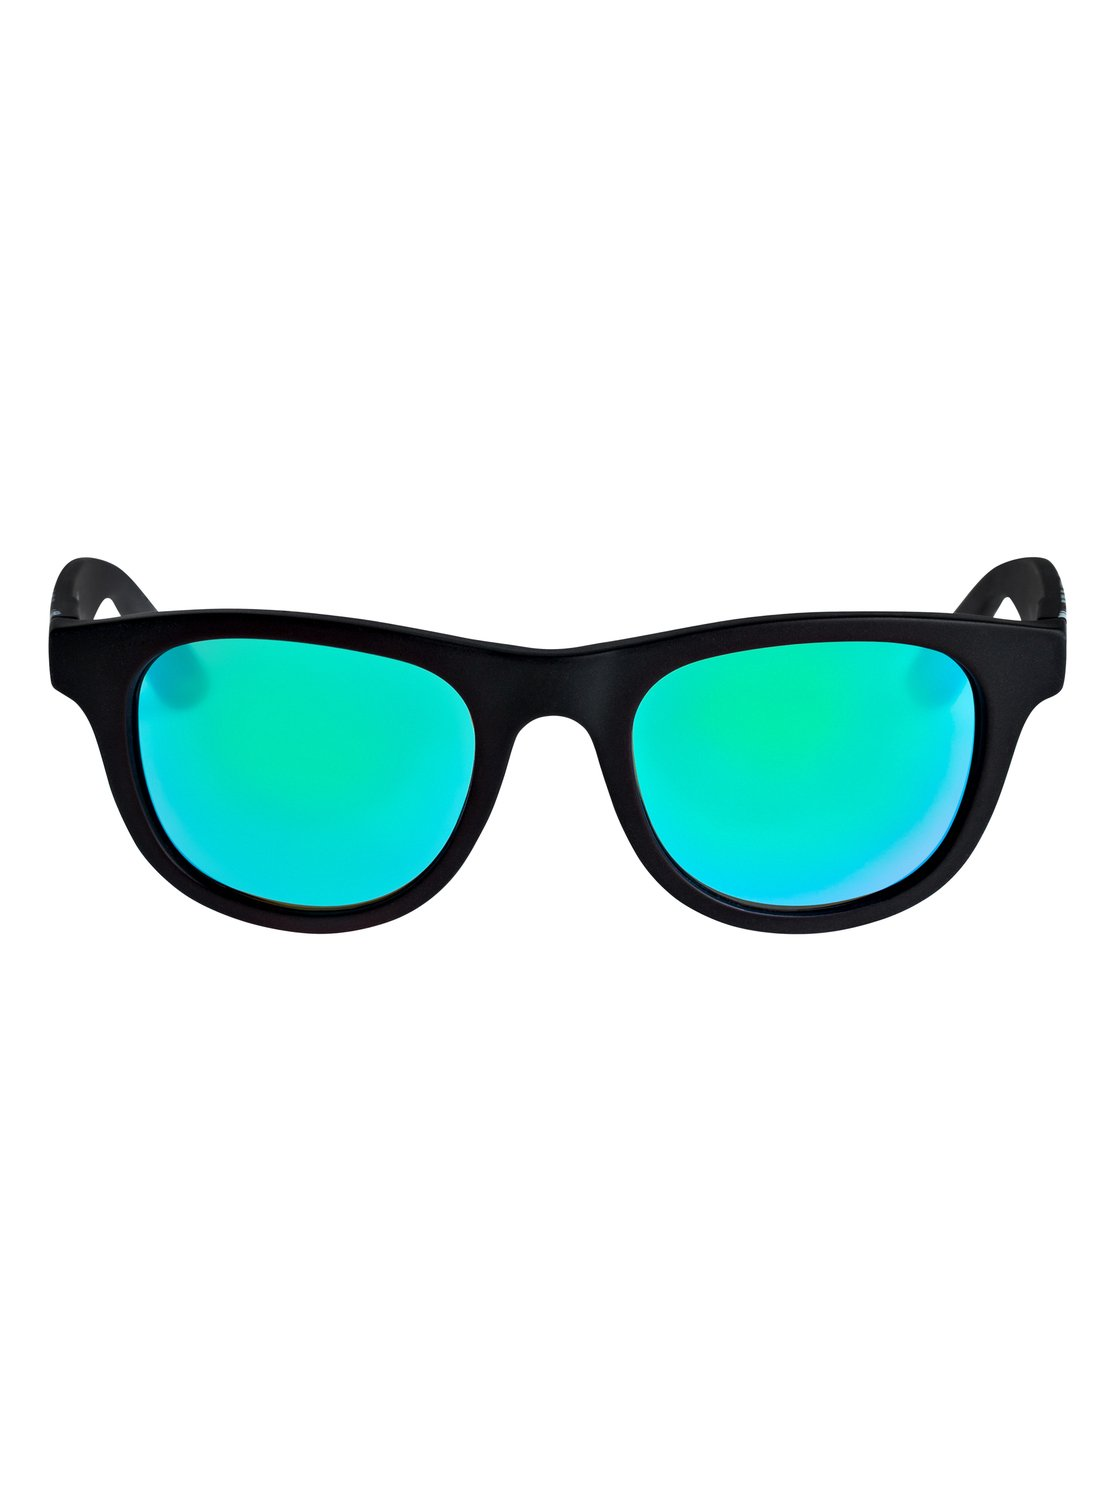 5a7a90bea8 1 Little Blondie - Sunglasses for Girls 3-7 ERG6011 Roxy